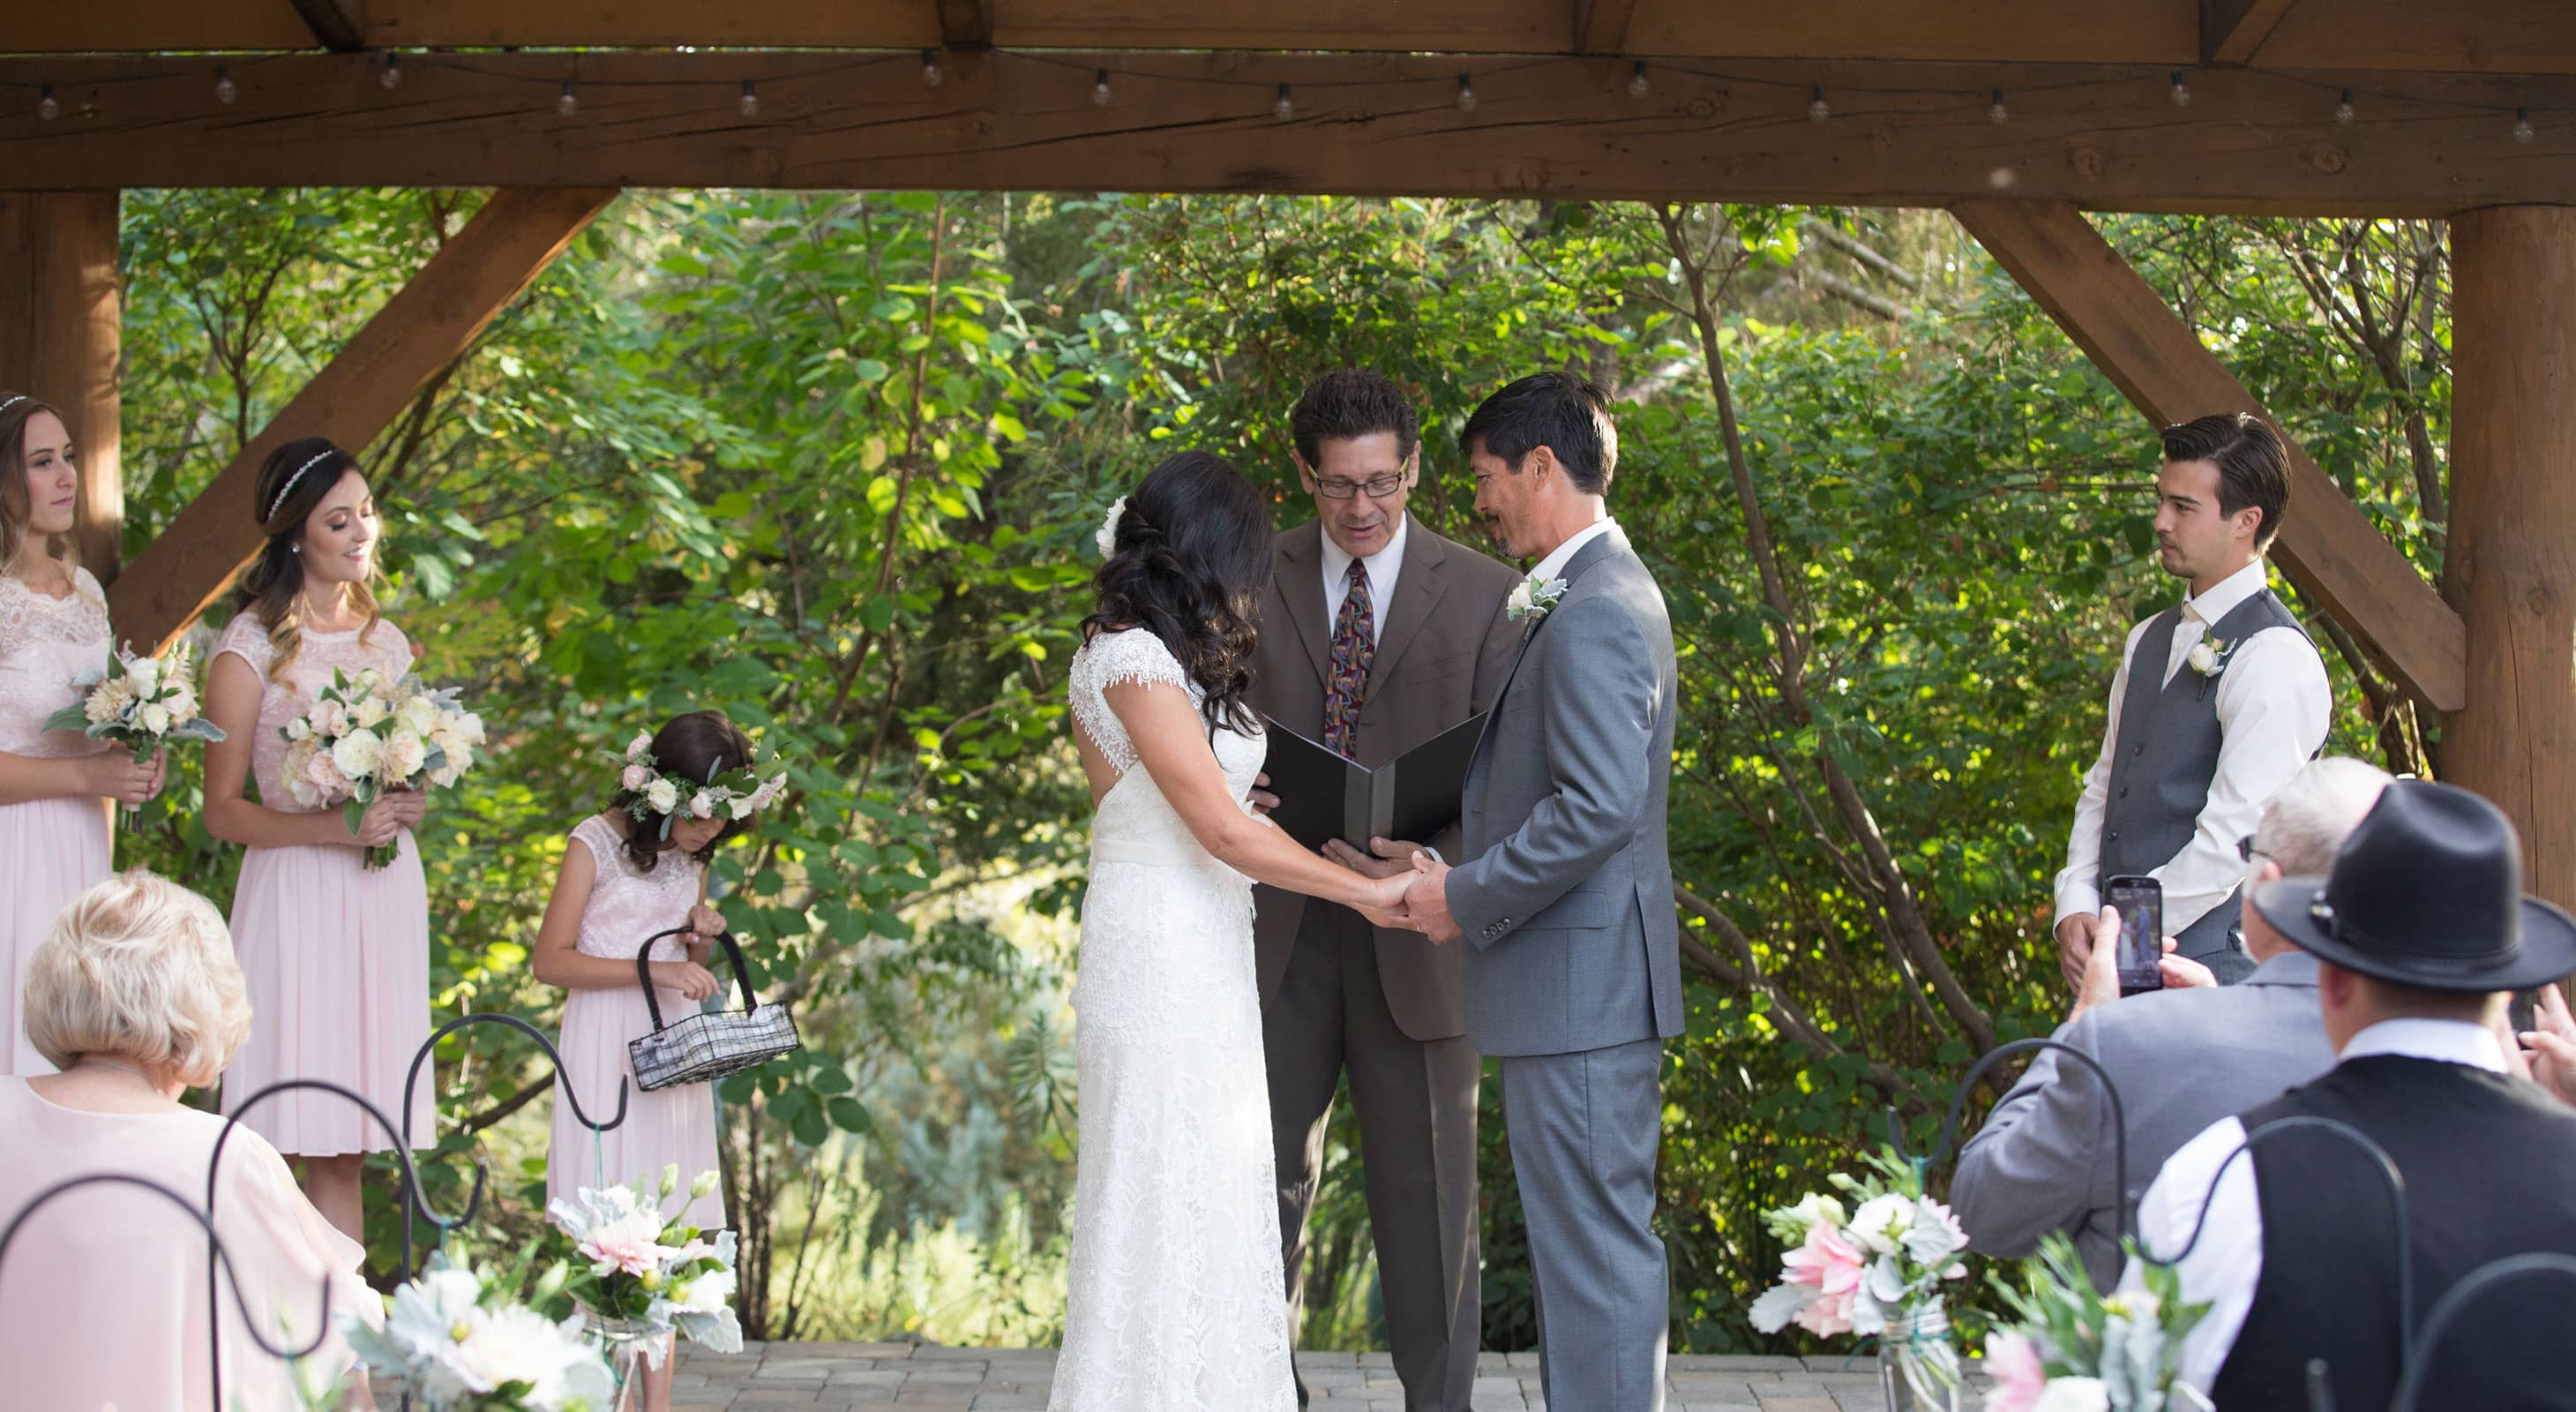 Couple exchanging vows under pavilion